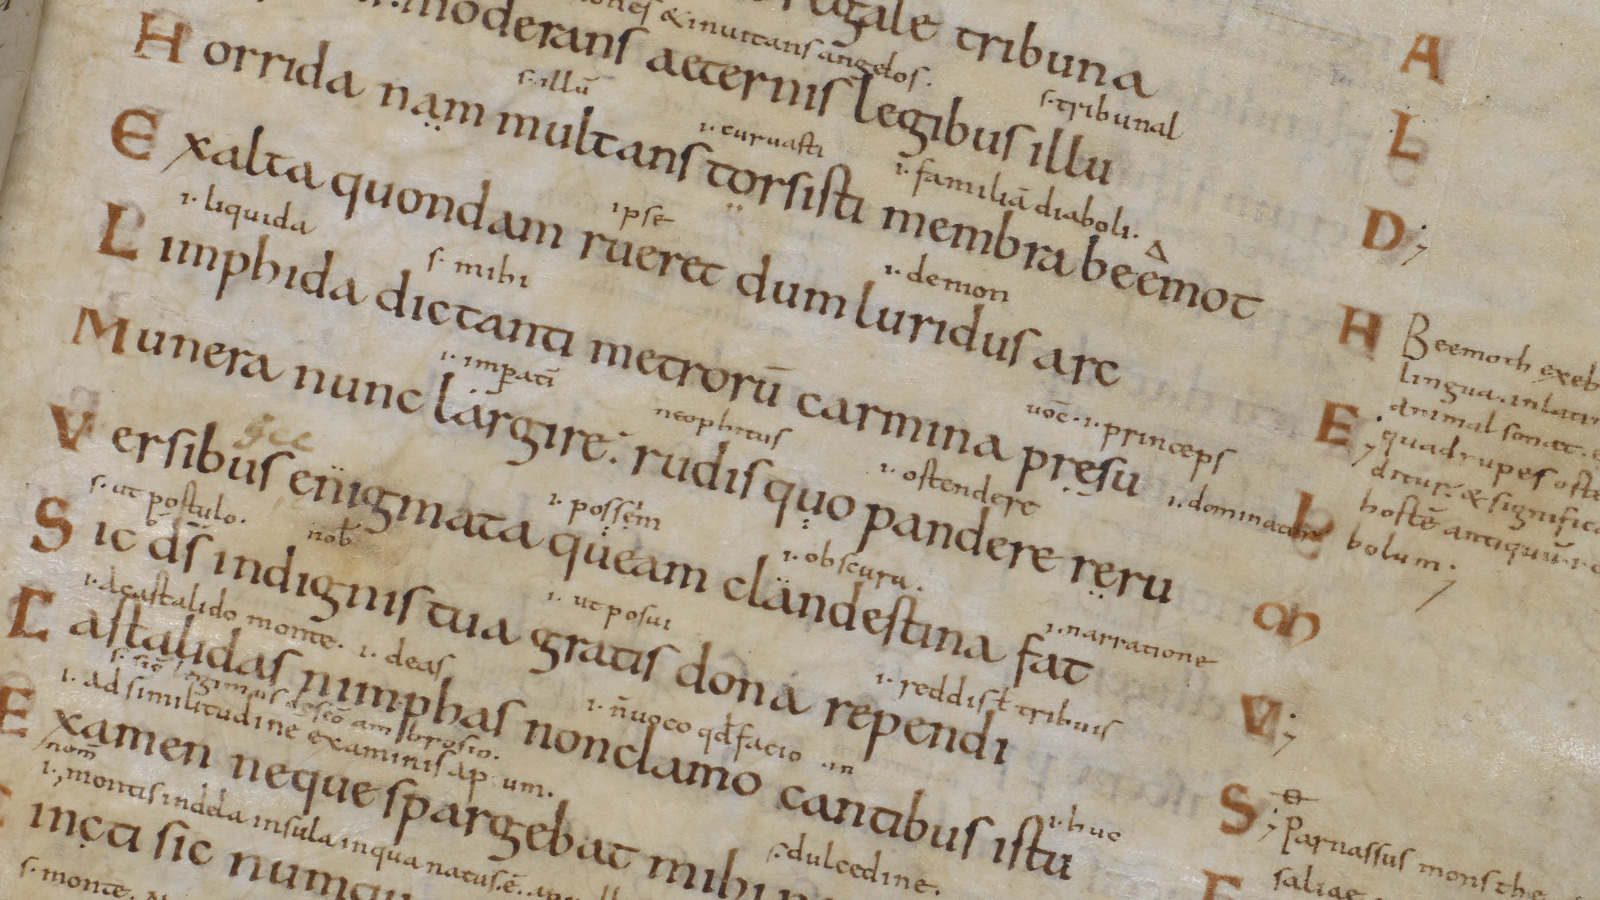 Aldhelm's riddles, to illustrate the Exeter Book riddles in context